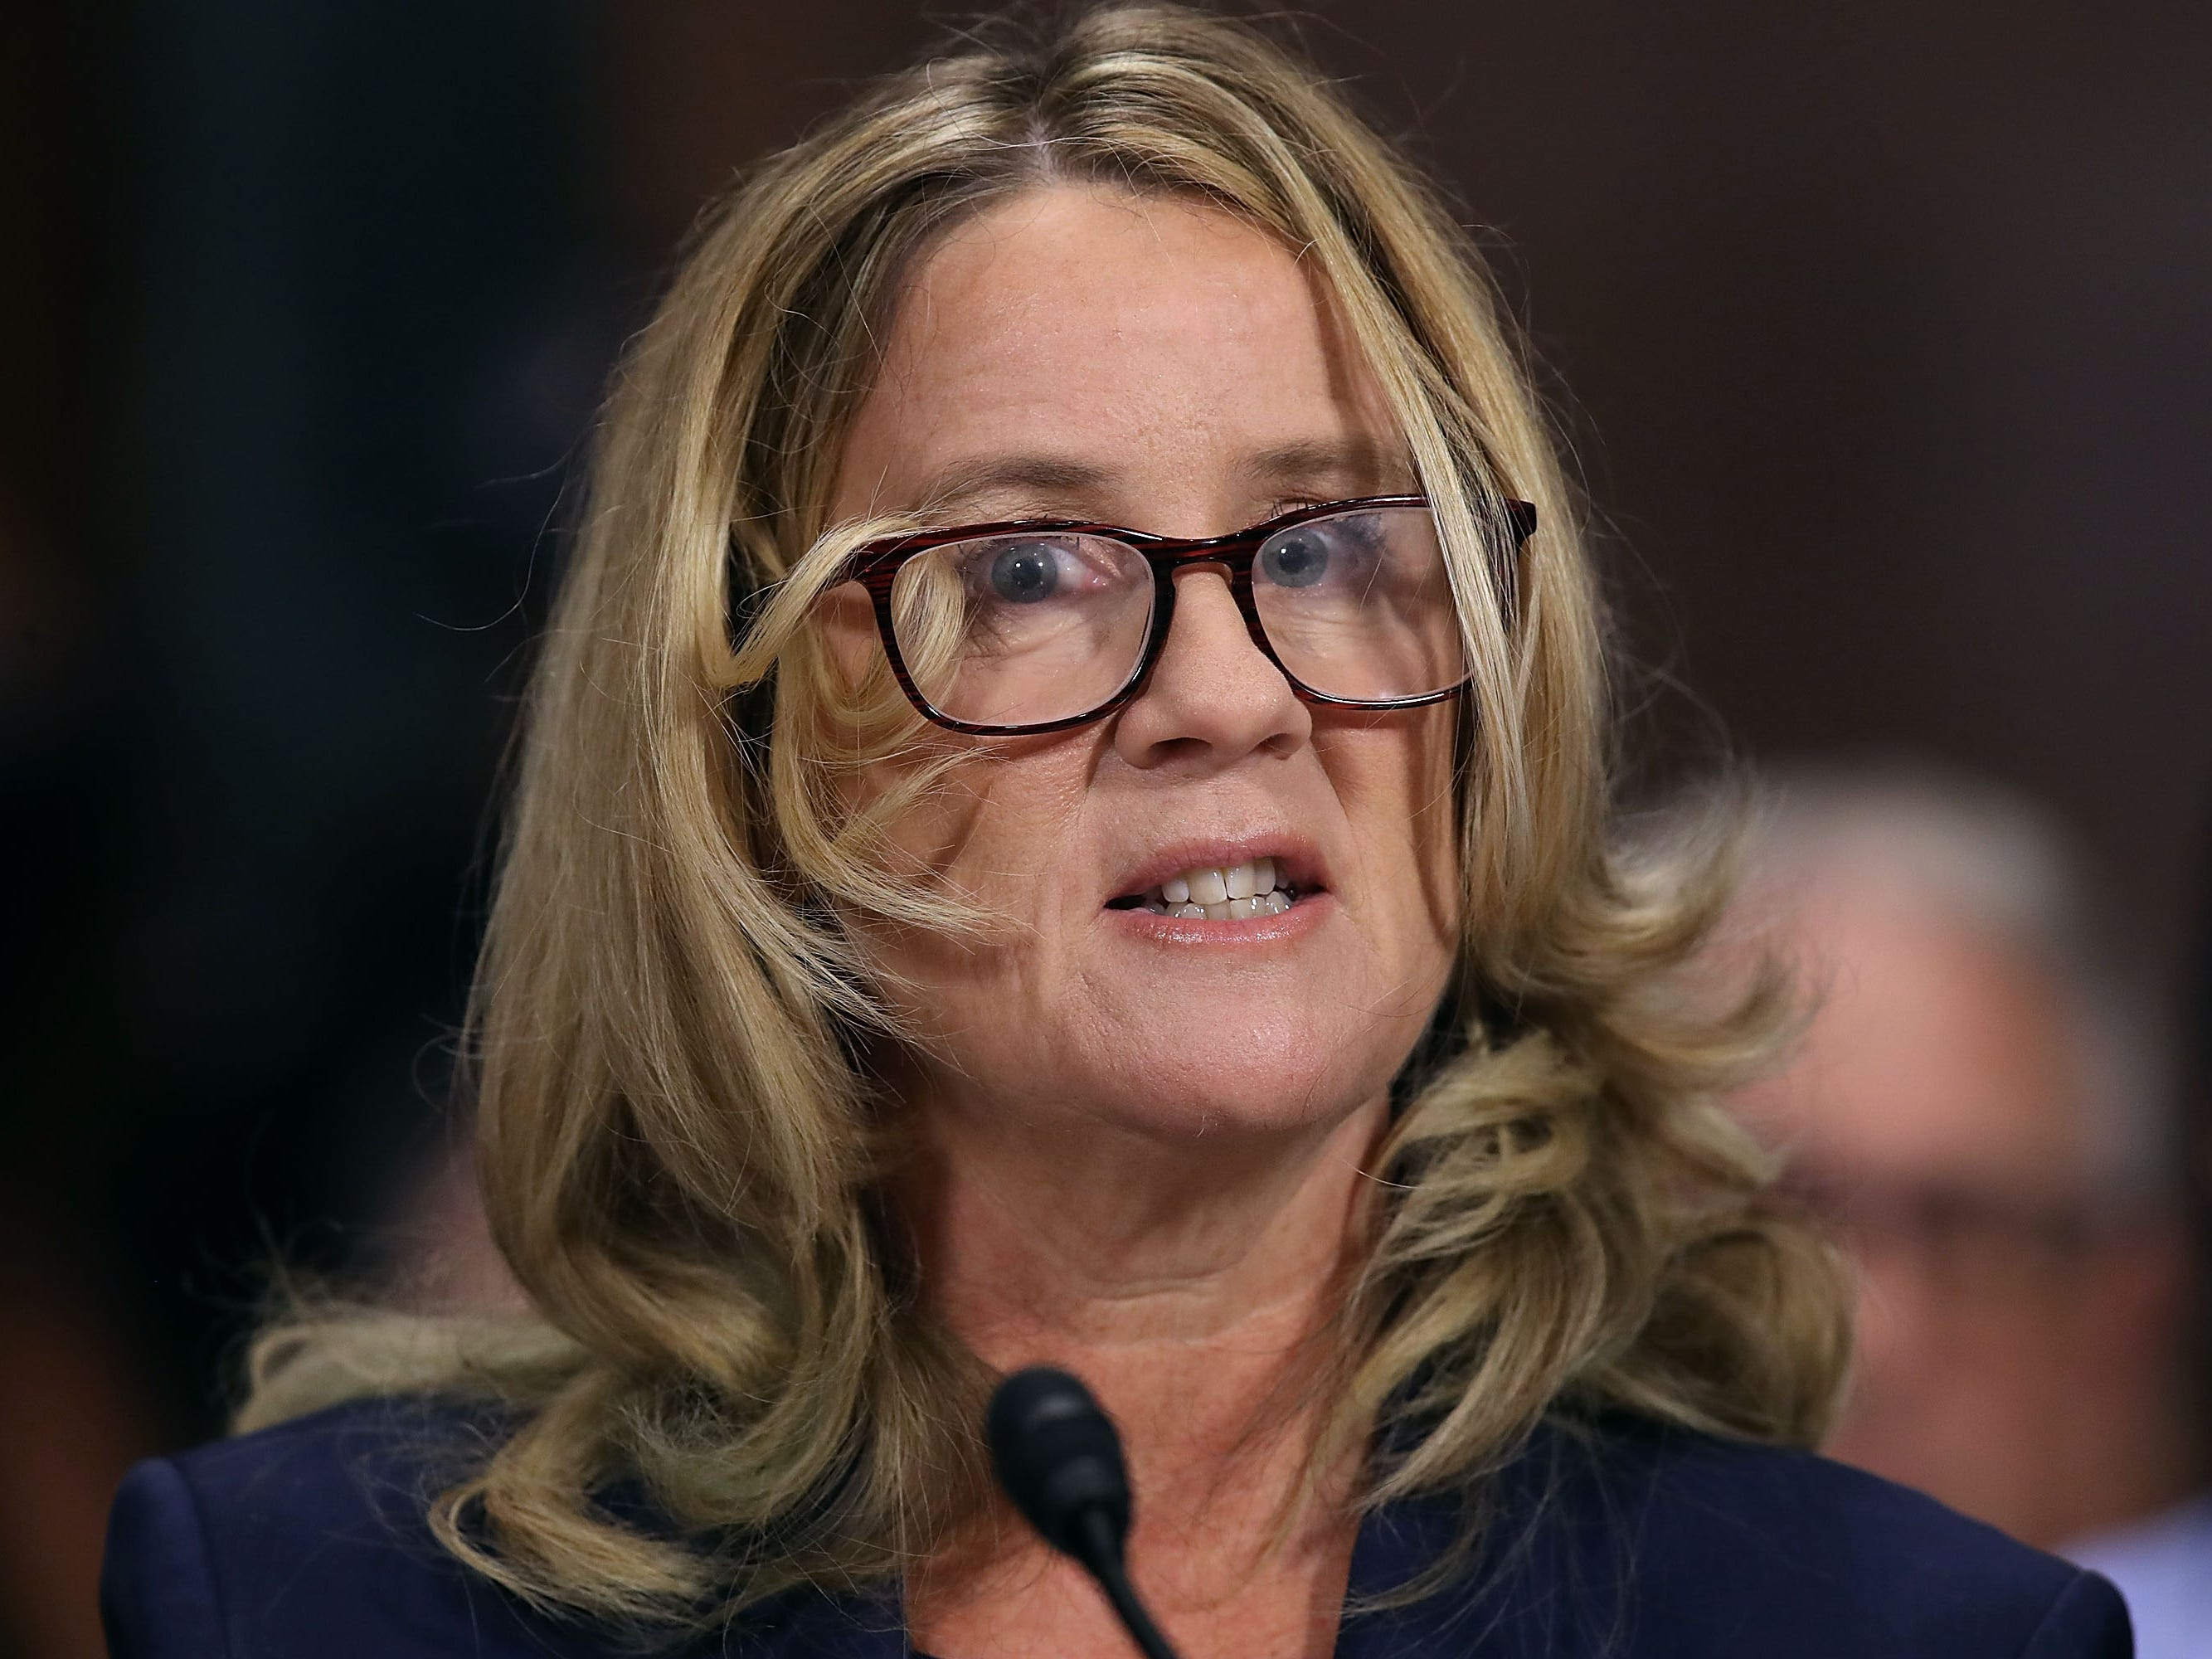 Christine Blasey Ford testifies before the Senate Judiciary Committee in the Dirksen Senate Office Building on Capitol Hill September 27, 2018 in Washington, DC. (Photo by Win McNamee / POOL / Getty Images)WIN MCNAMEE/AFP/Getty Images ORG XMIT: 775234142 ORIG FILE ID: AFP_19I54B